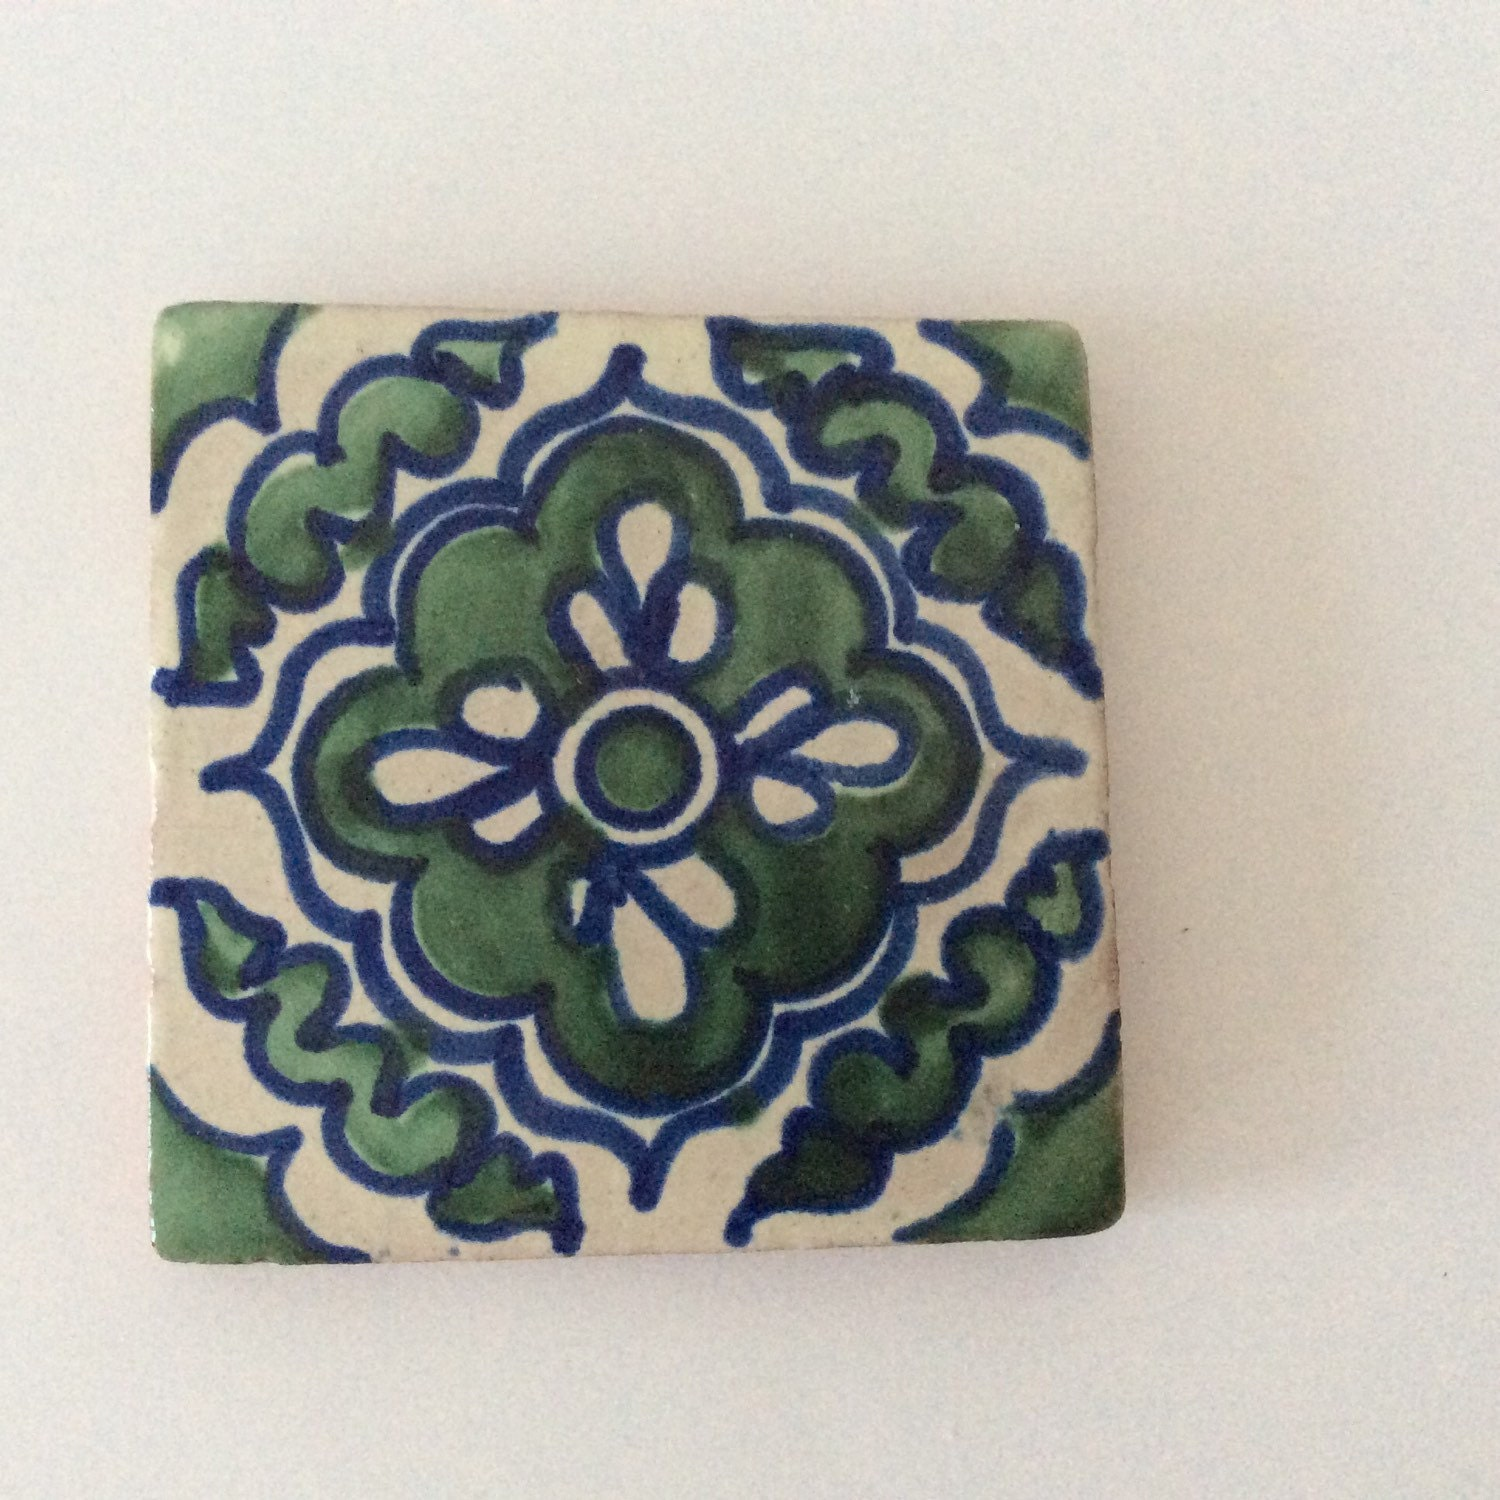 Painted Ceramic Tile Trivet Vintage By Projectobjectvintage